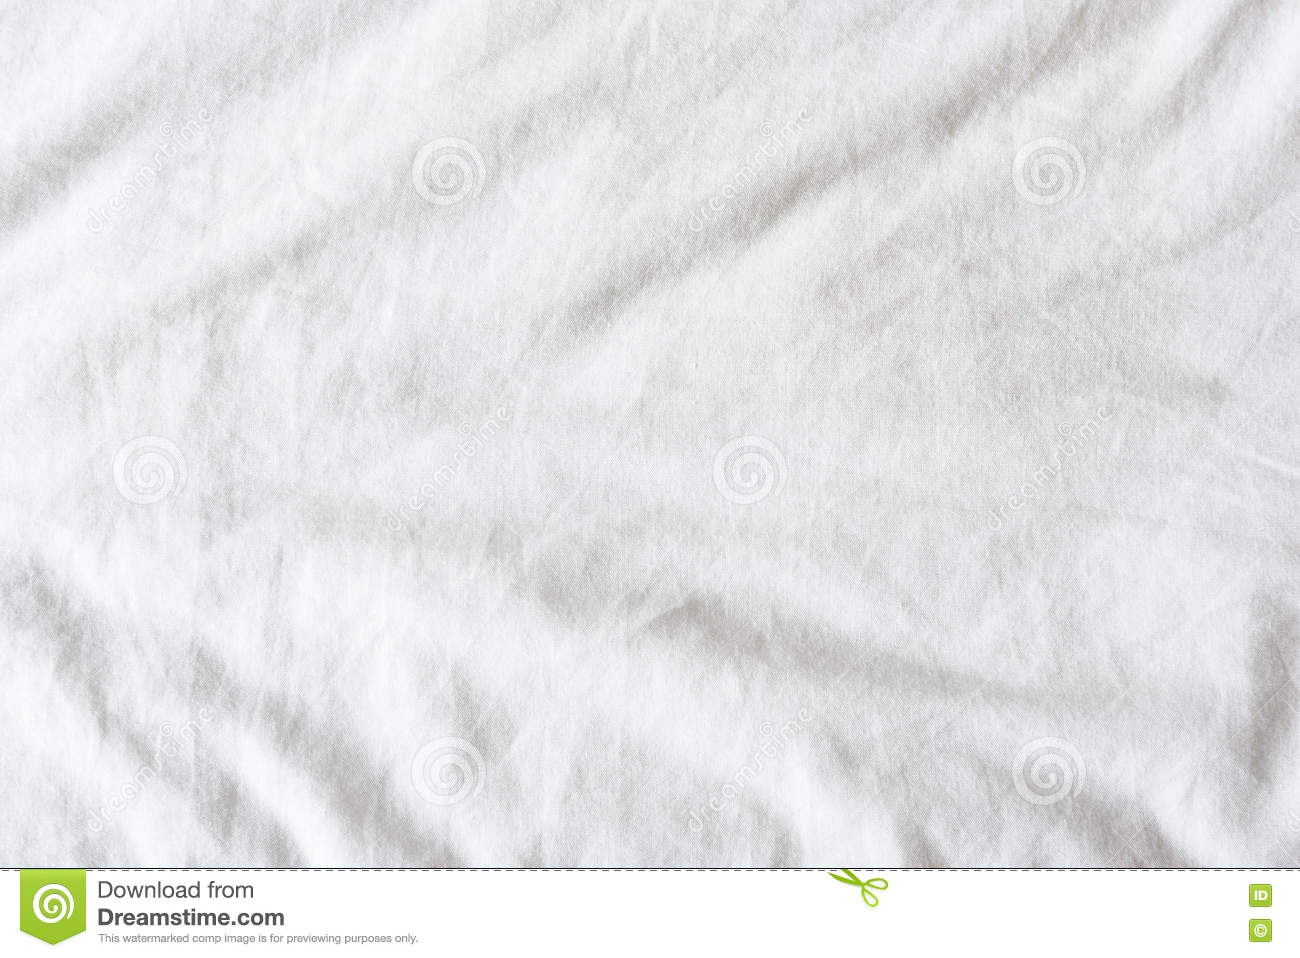 Wrinkled bed sheets texture - Top View Of Wrinkles On An Untidy White Bed Sheet In A Bedroom